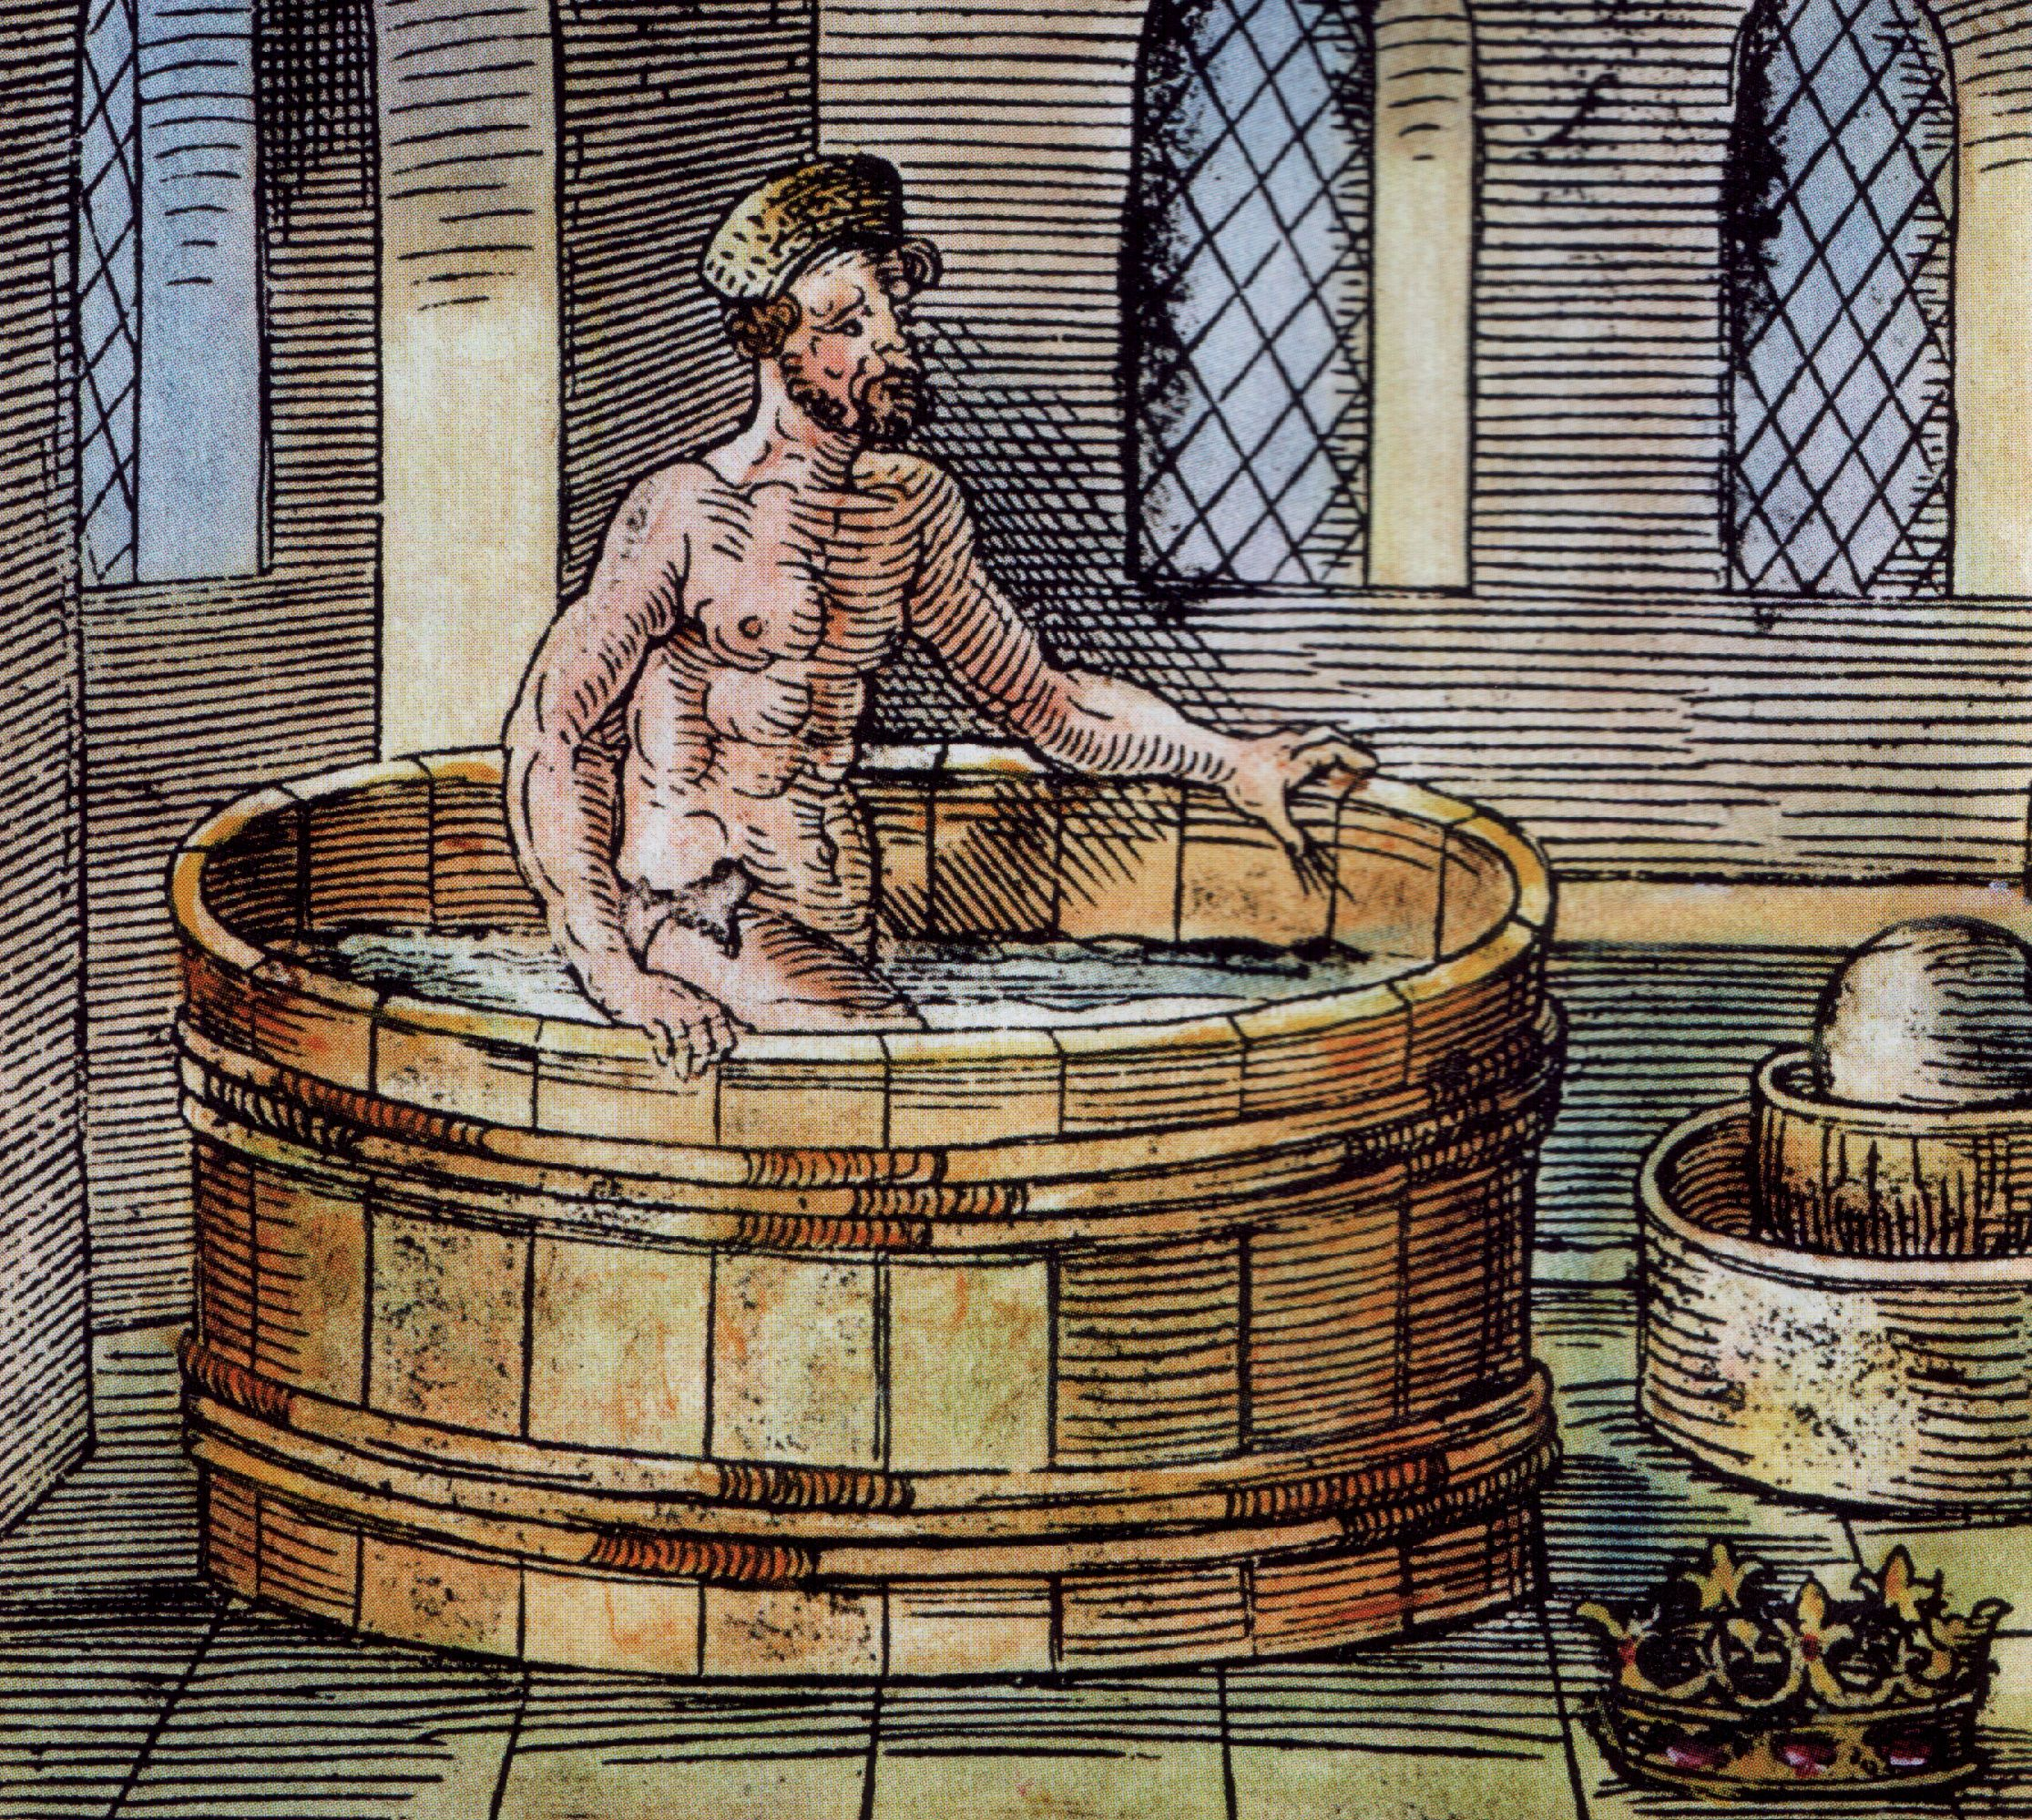 Archimedes in the bath